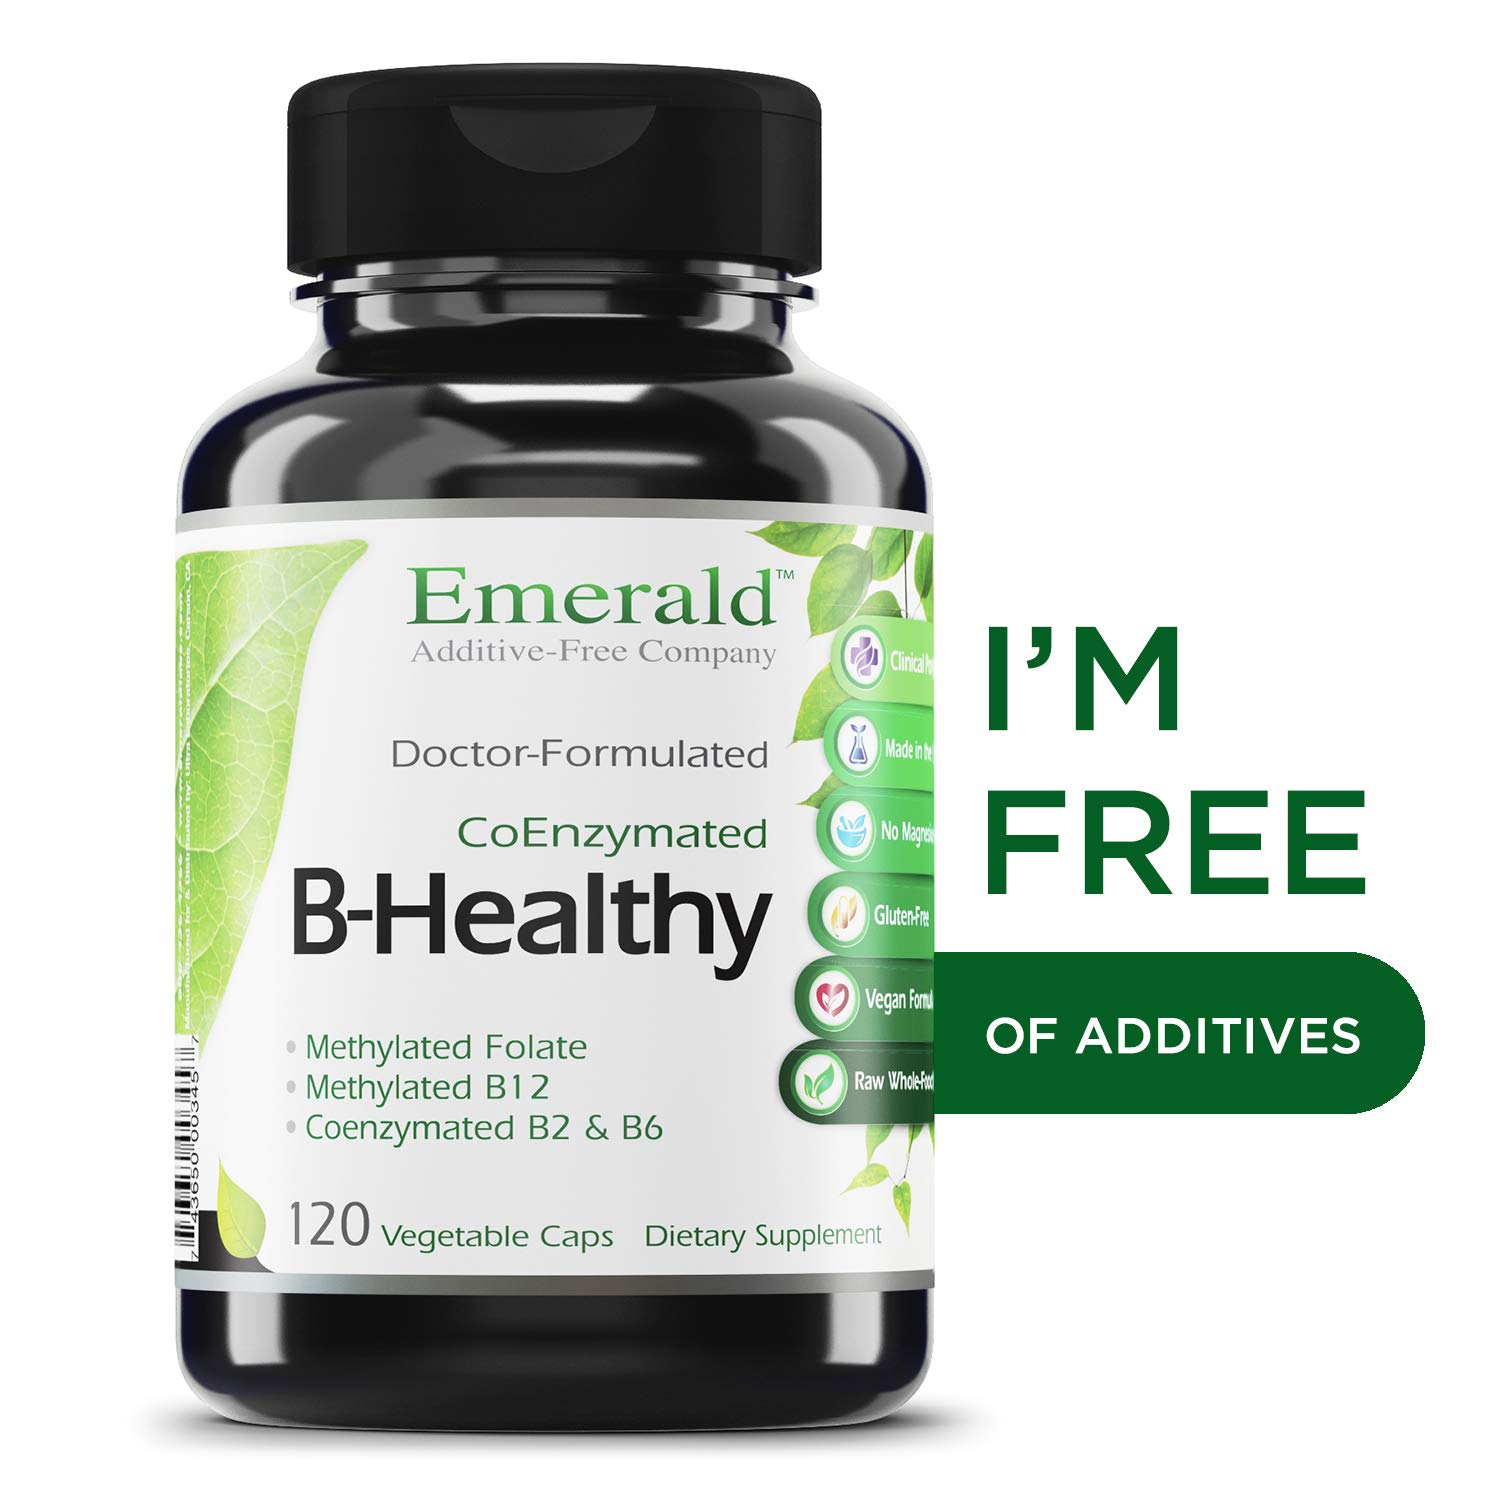 B Healthy - with L-5 Methyltetrahydrofolate (5-MTHF) Coenzymated Folic Acid - Helps Improve Energy, Lower Stress, Fatigue, Healthy Immune System - Emerald Labs - 120 Vegetable Capsules by Emerald Laboratories